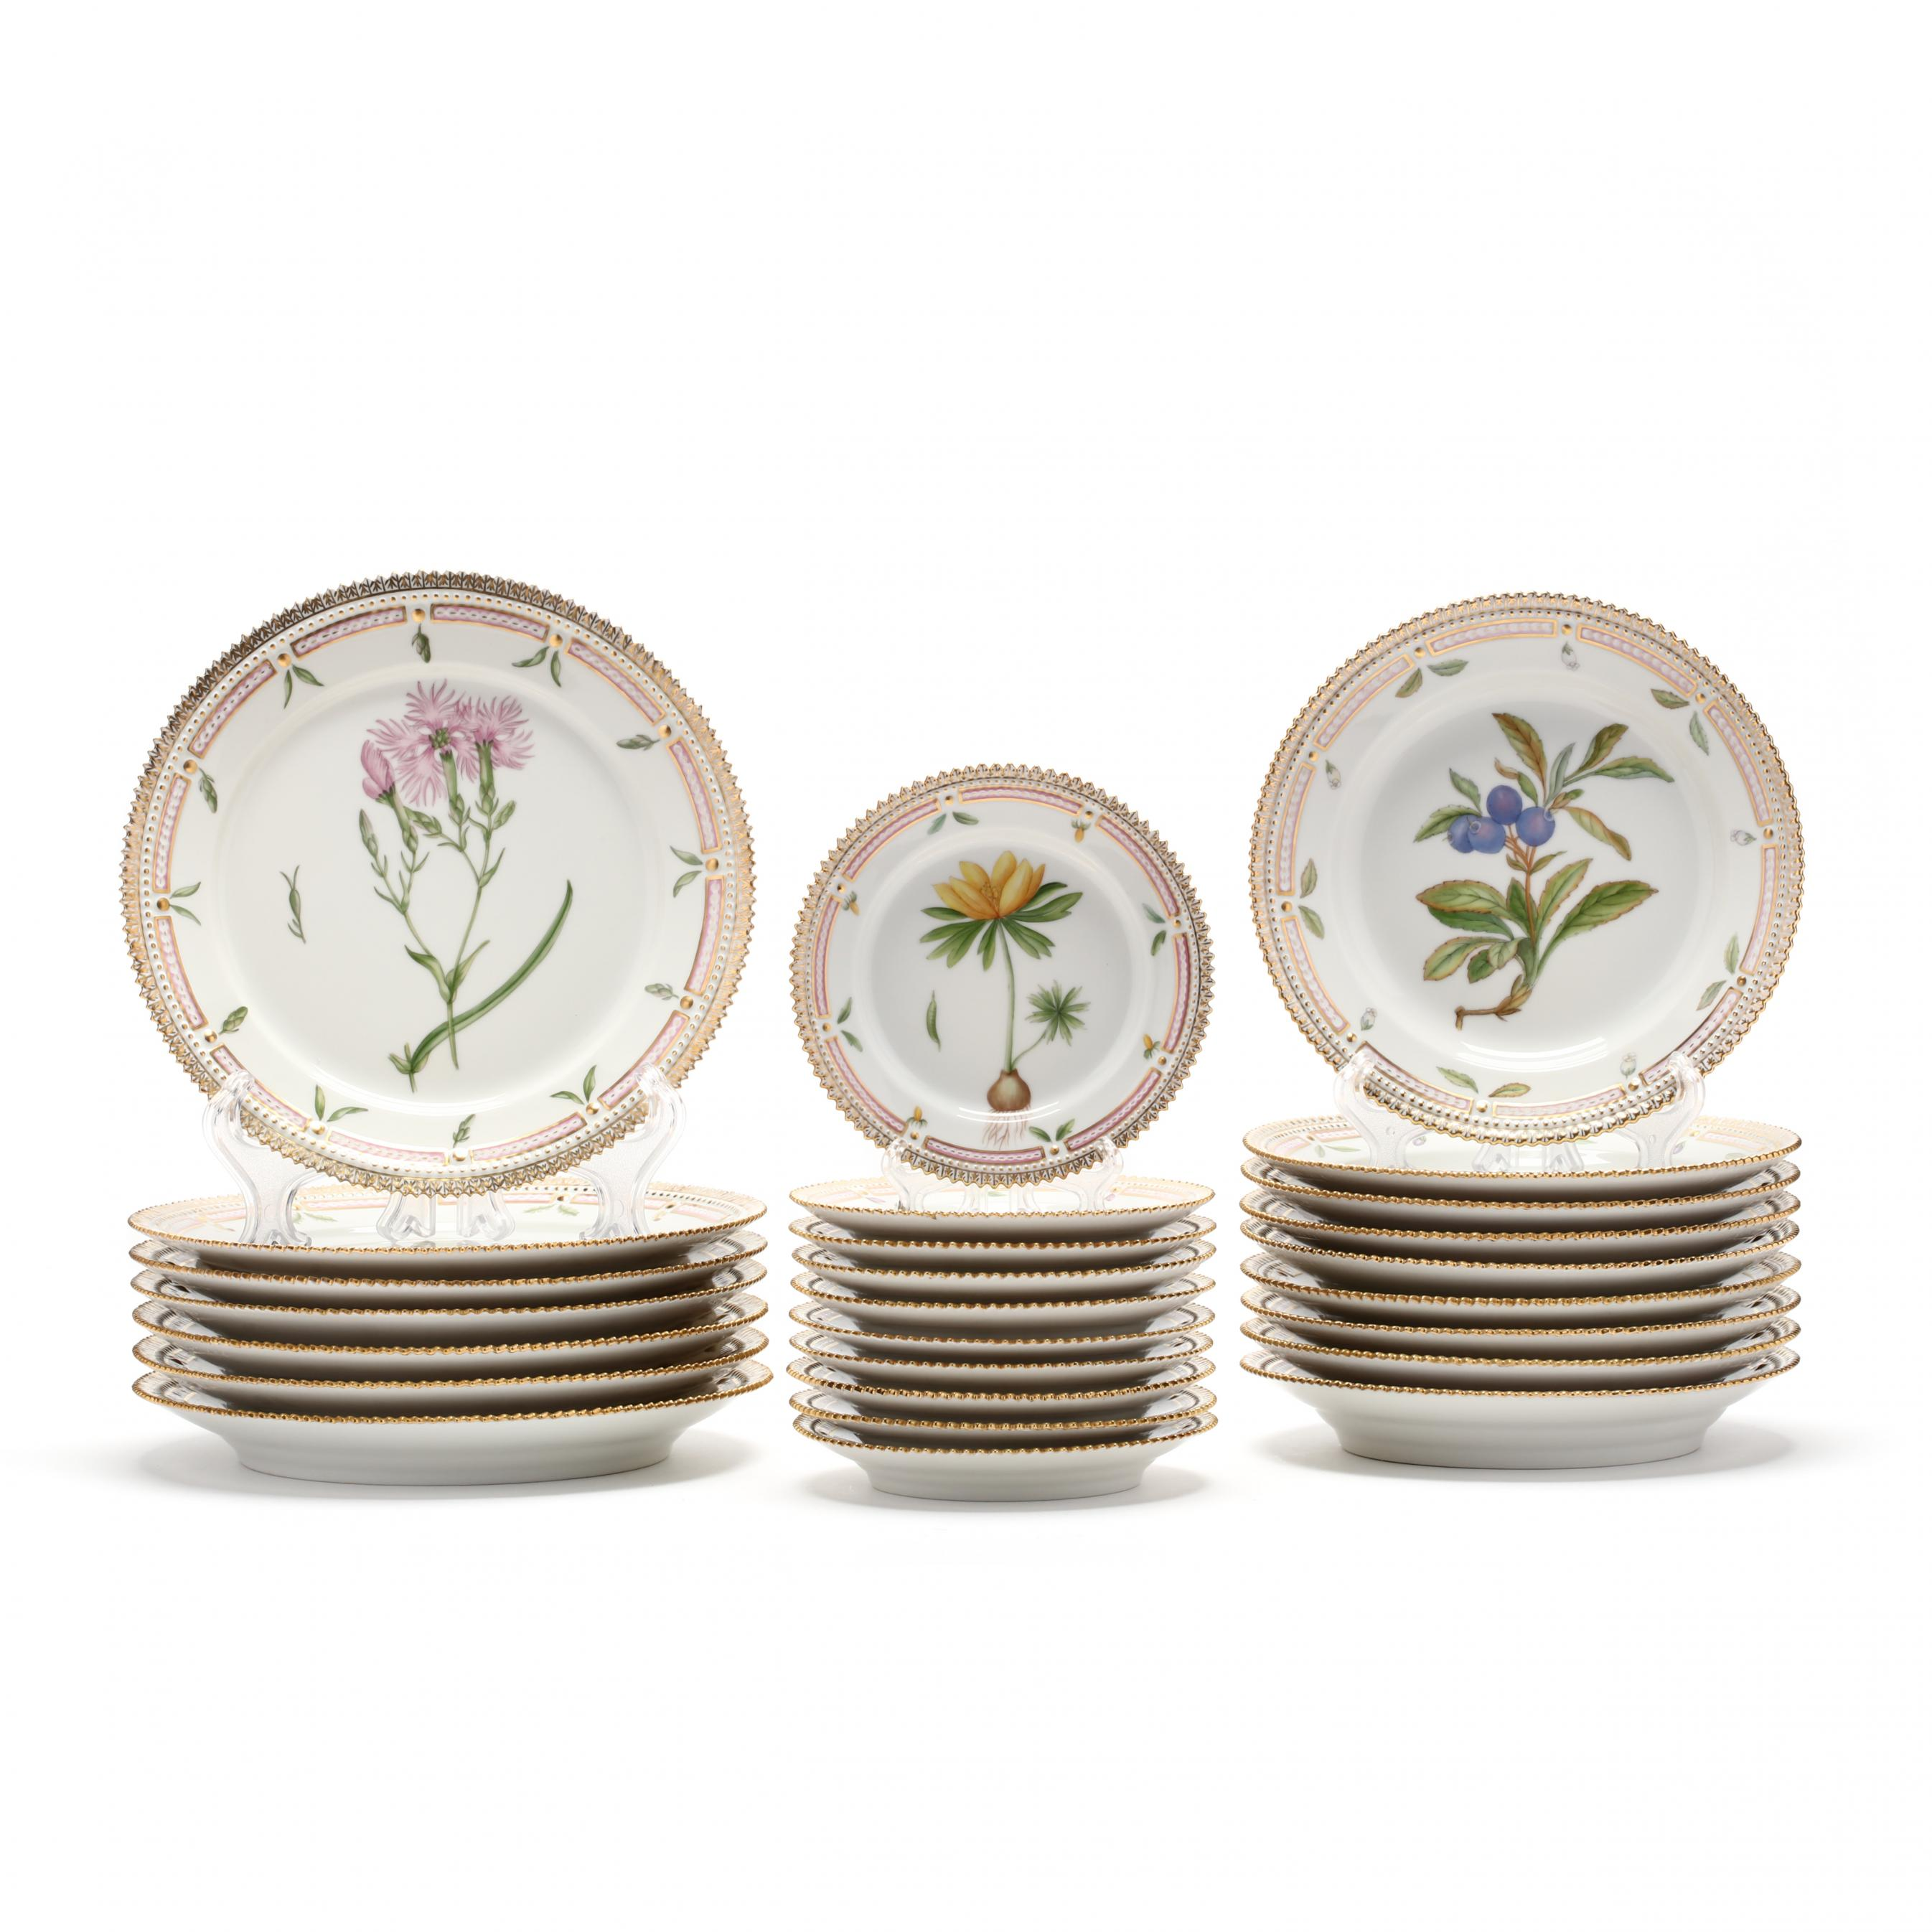 a-group-of-26-royal-danica-porcelain-flora-danica-table-ware